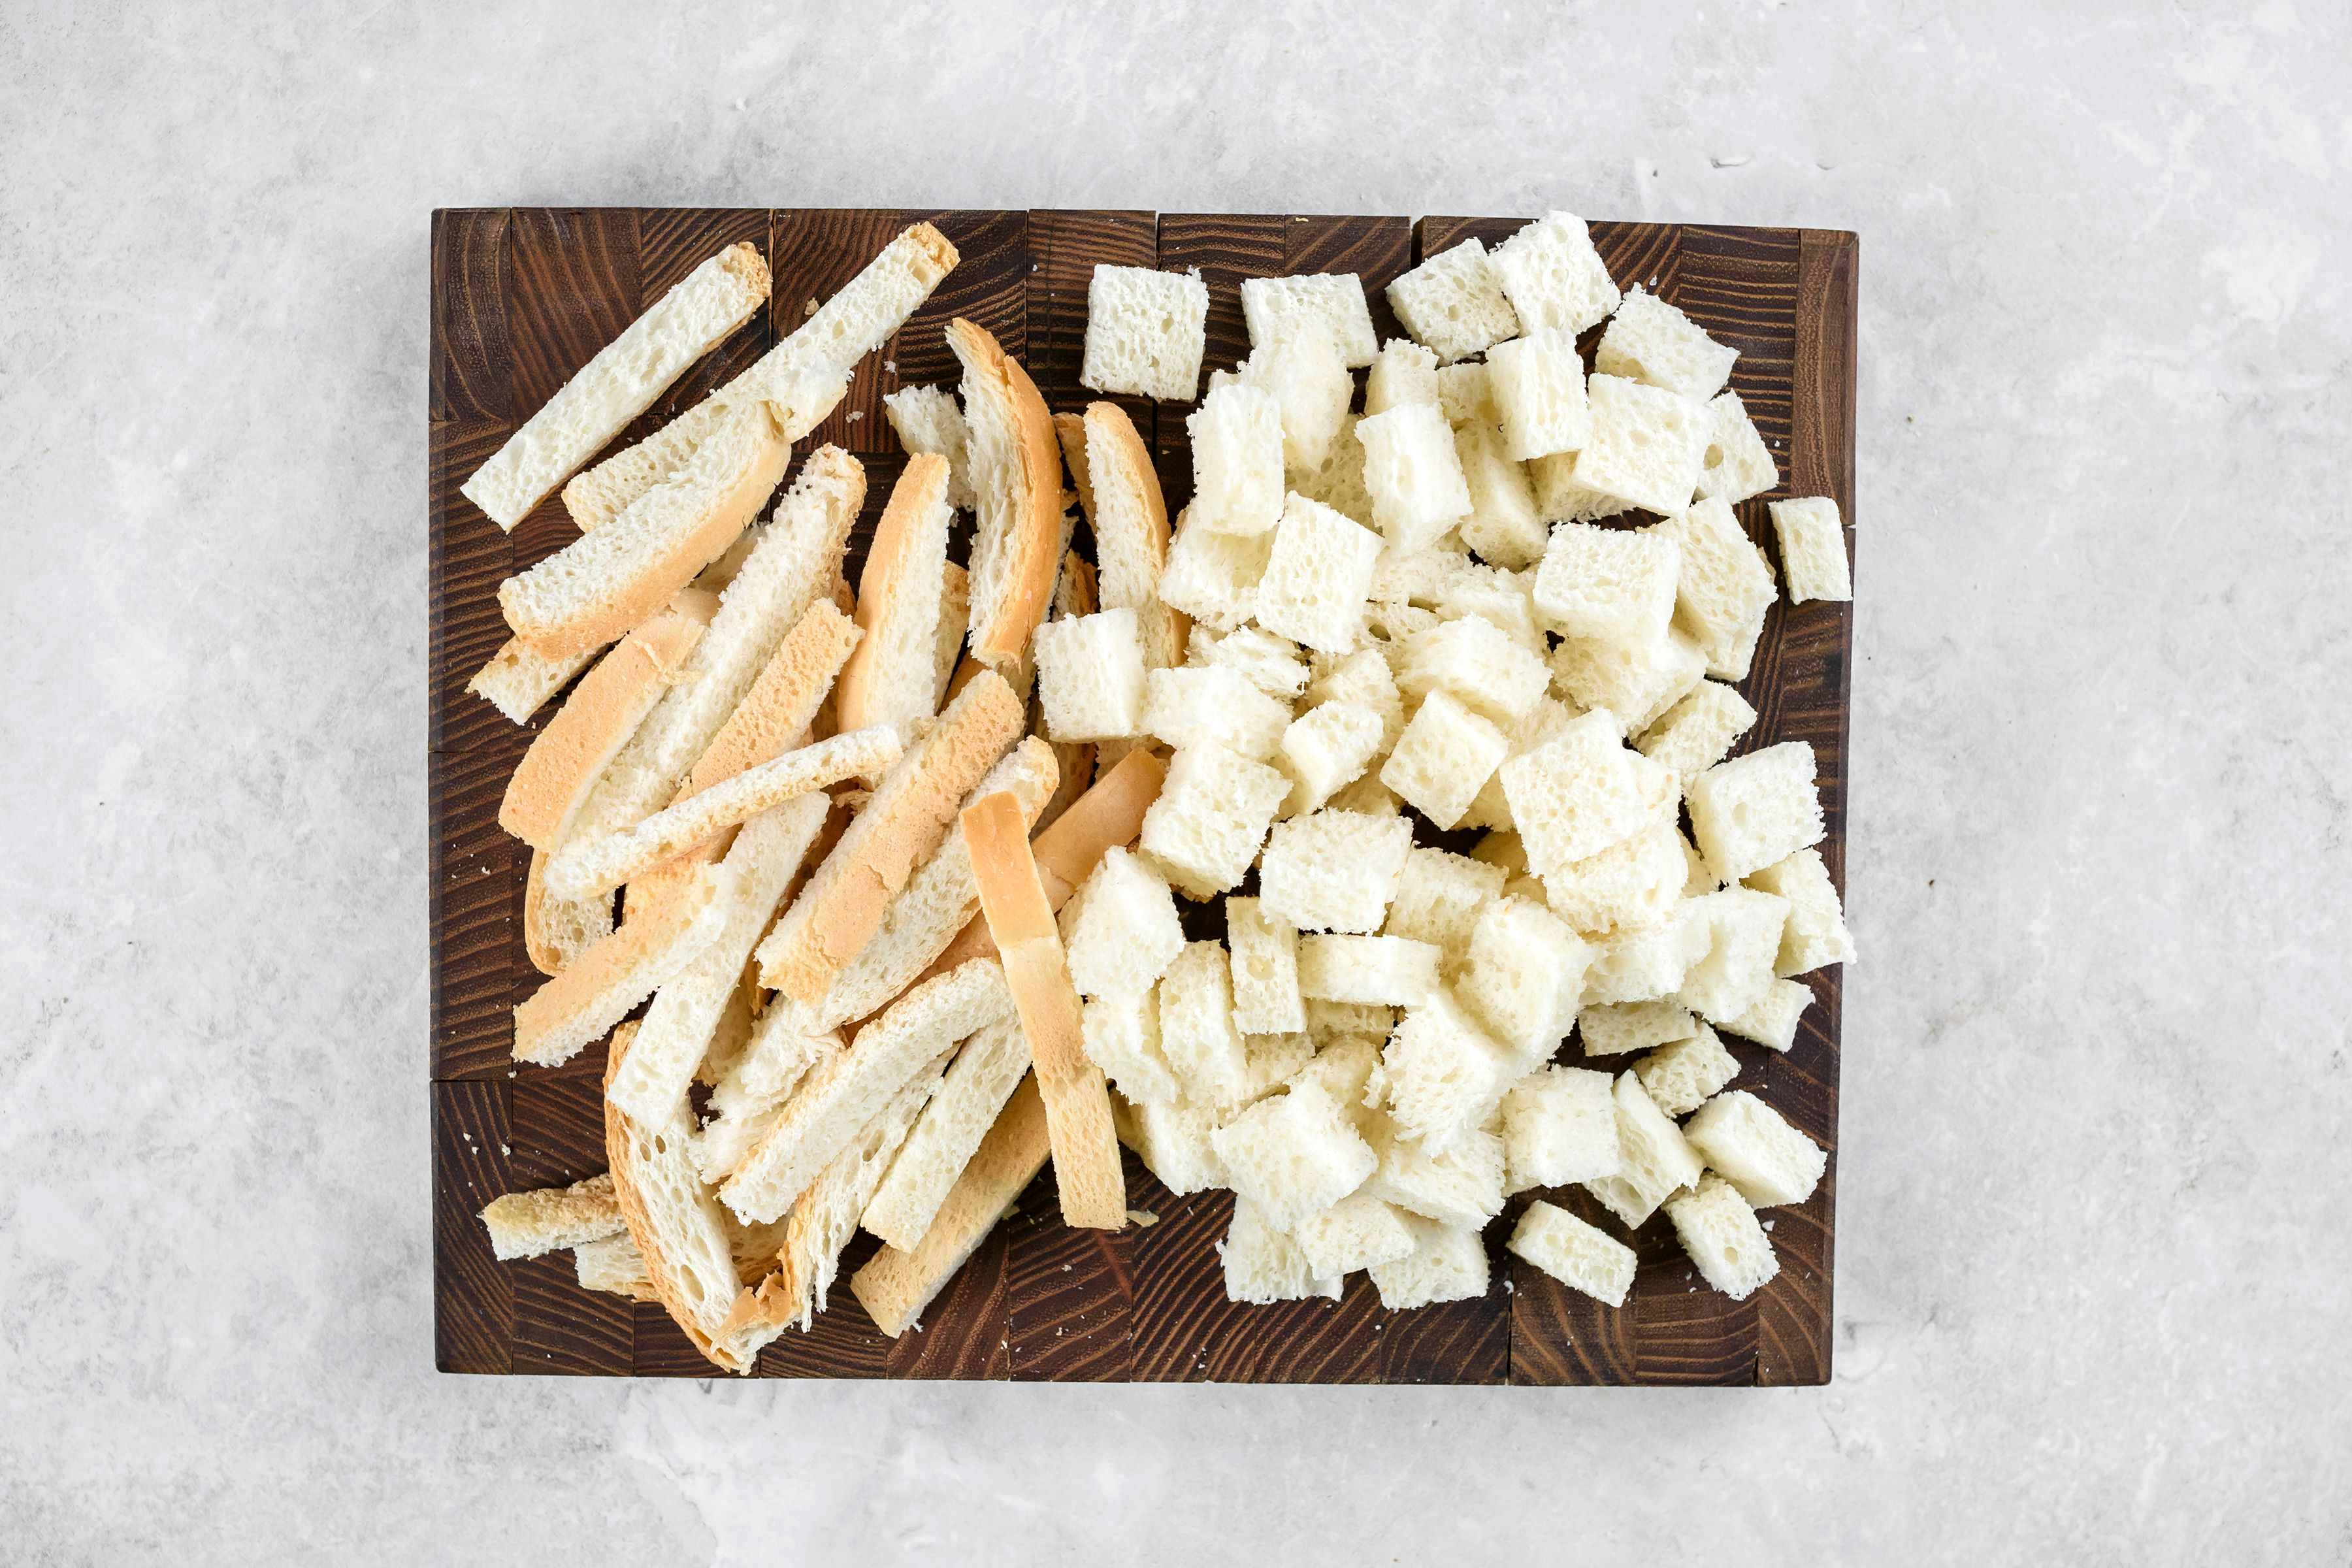 White bread on wooden cutting board, cut into cubes